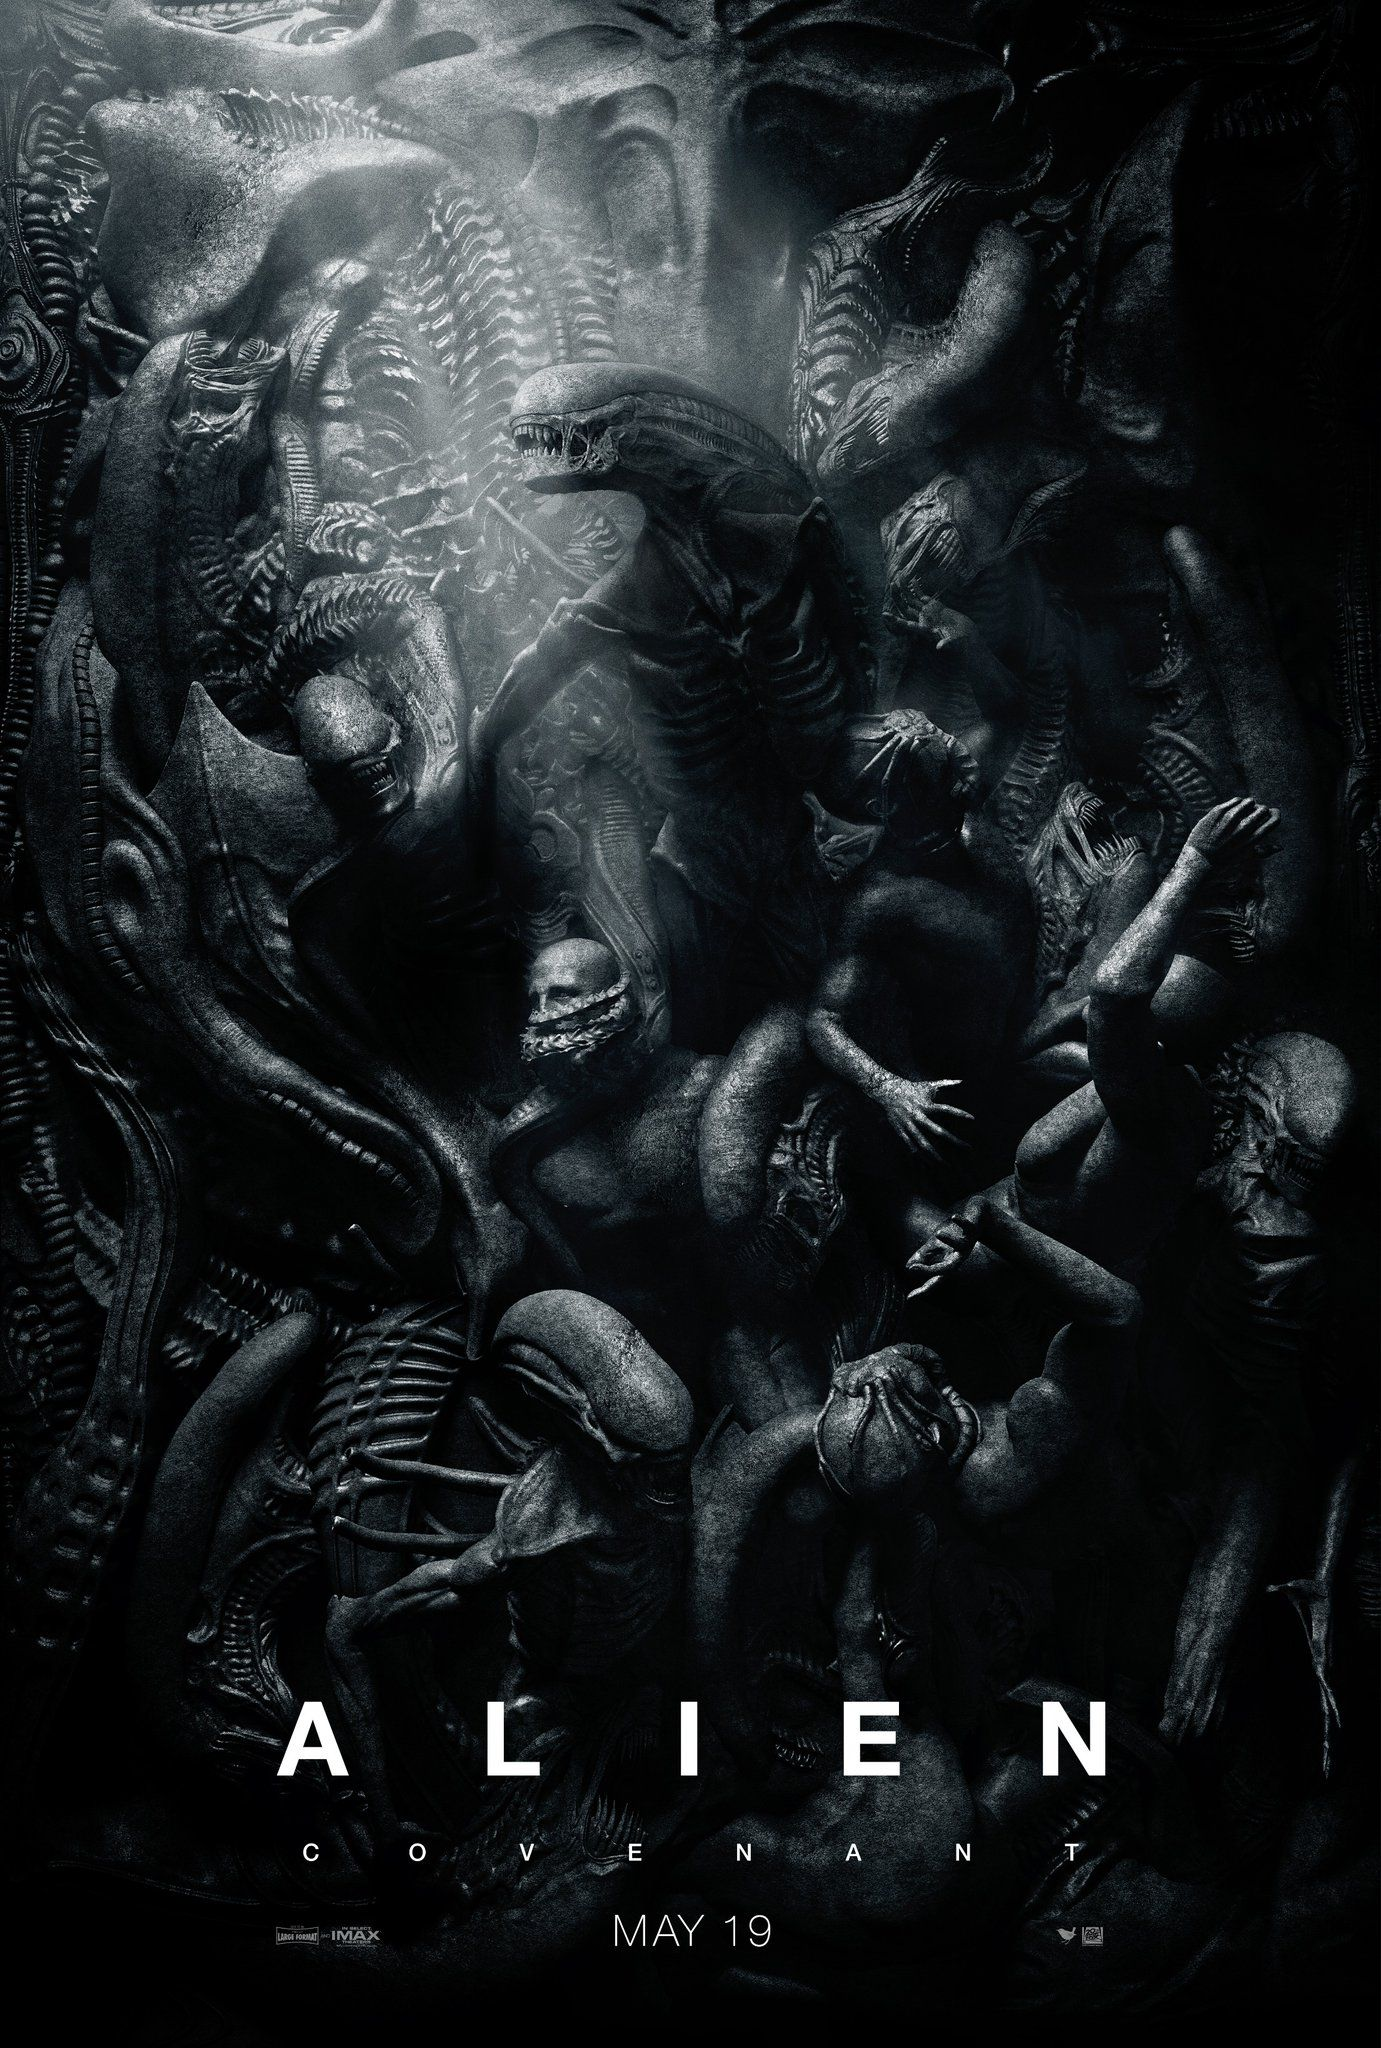 I had the highest of hopes ALIEN: COVENANT would be a sublime movie to make up for it's predecessor's shite but sadly it is too close to more of the same.Full diatribe, I mean review, is now up on Salty Popcorn.http://saltypopcorn.com.au/alien-covenant-review/